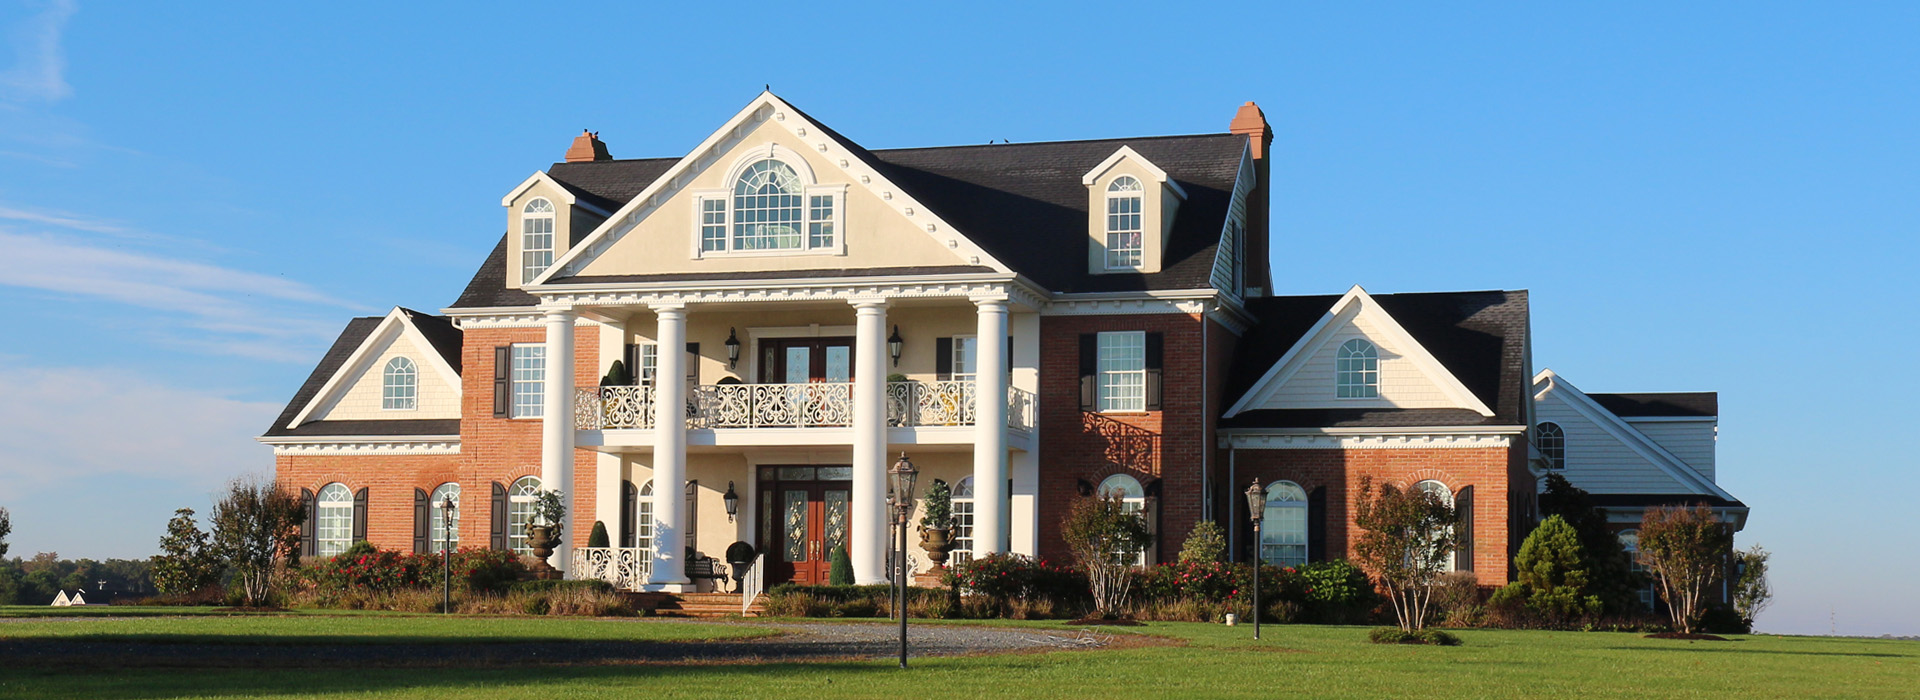 Shop new modular home mansions - How are modular homes built ...